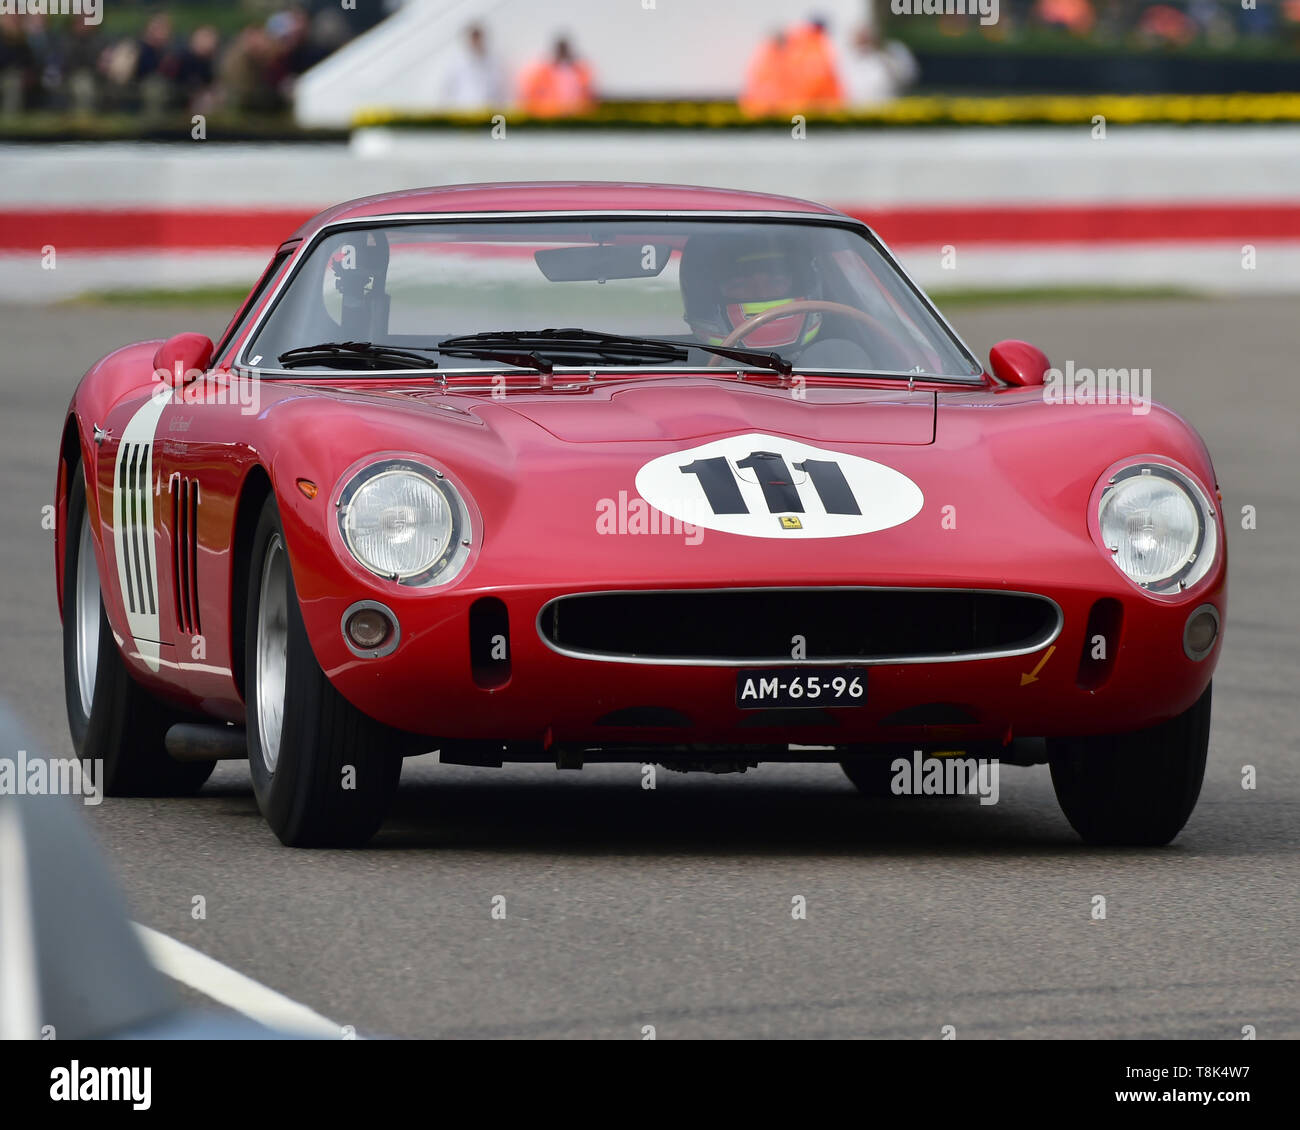 James Cottingham, Nicky Pastorelli, Ferrari 250 GTO, Graham Hill Trophy, Closed cockpit GT cars, Prototype cars, Spirit of the RAC TT Races 1960-1964, - Stock Image